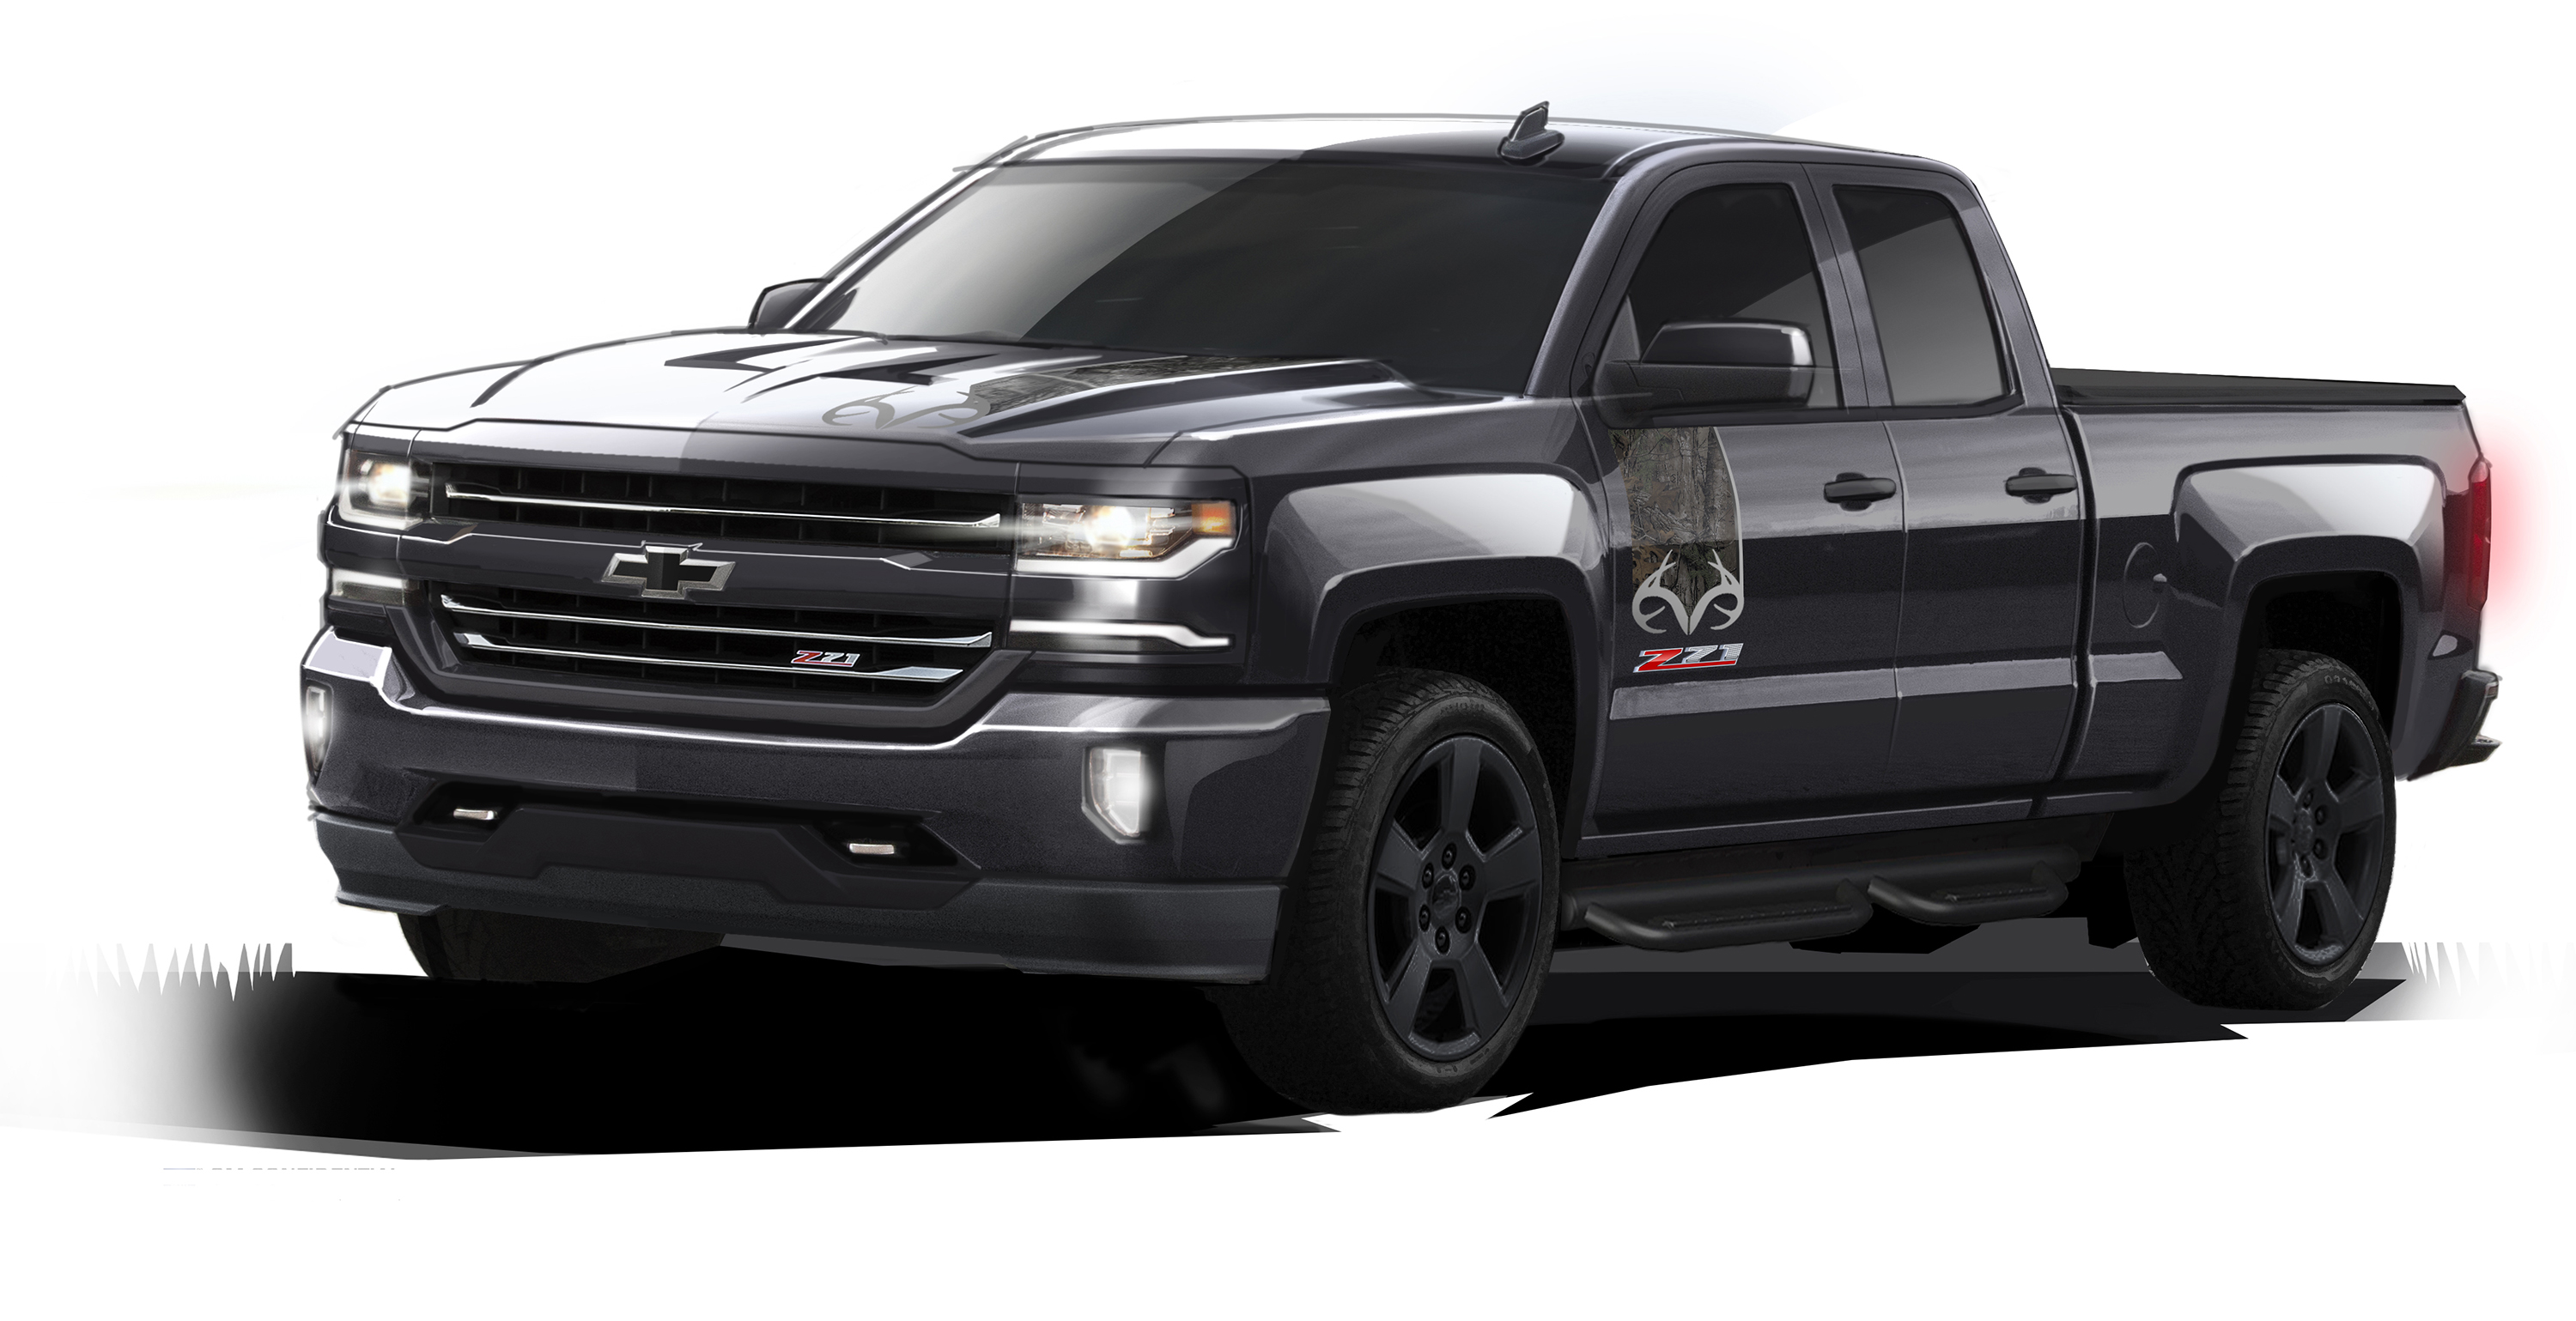 truck models design reviews new chevy special chevrolet pickup trucks silverado edition